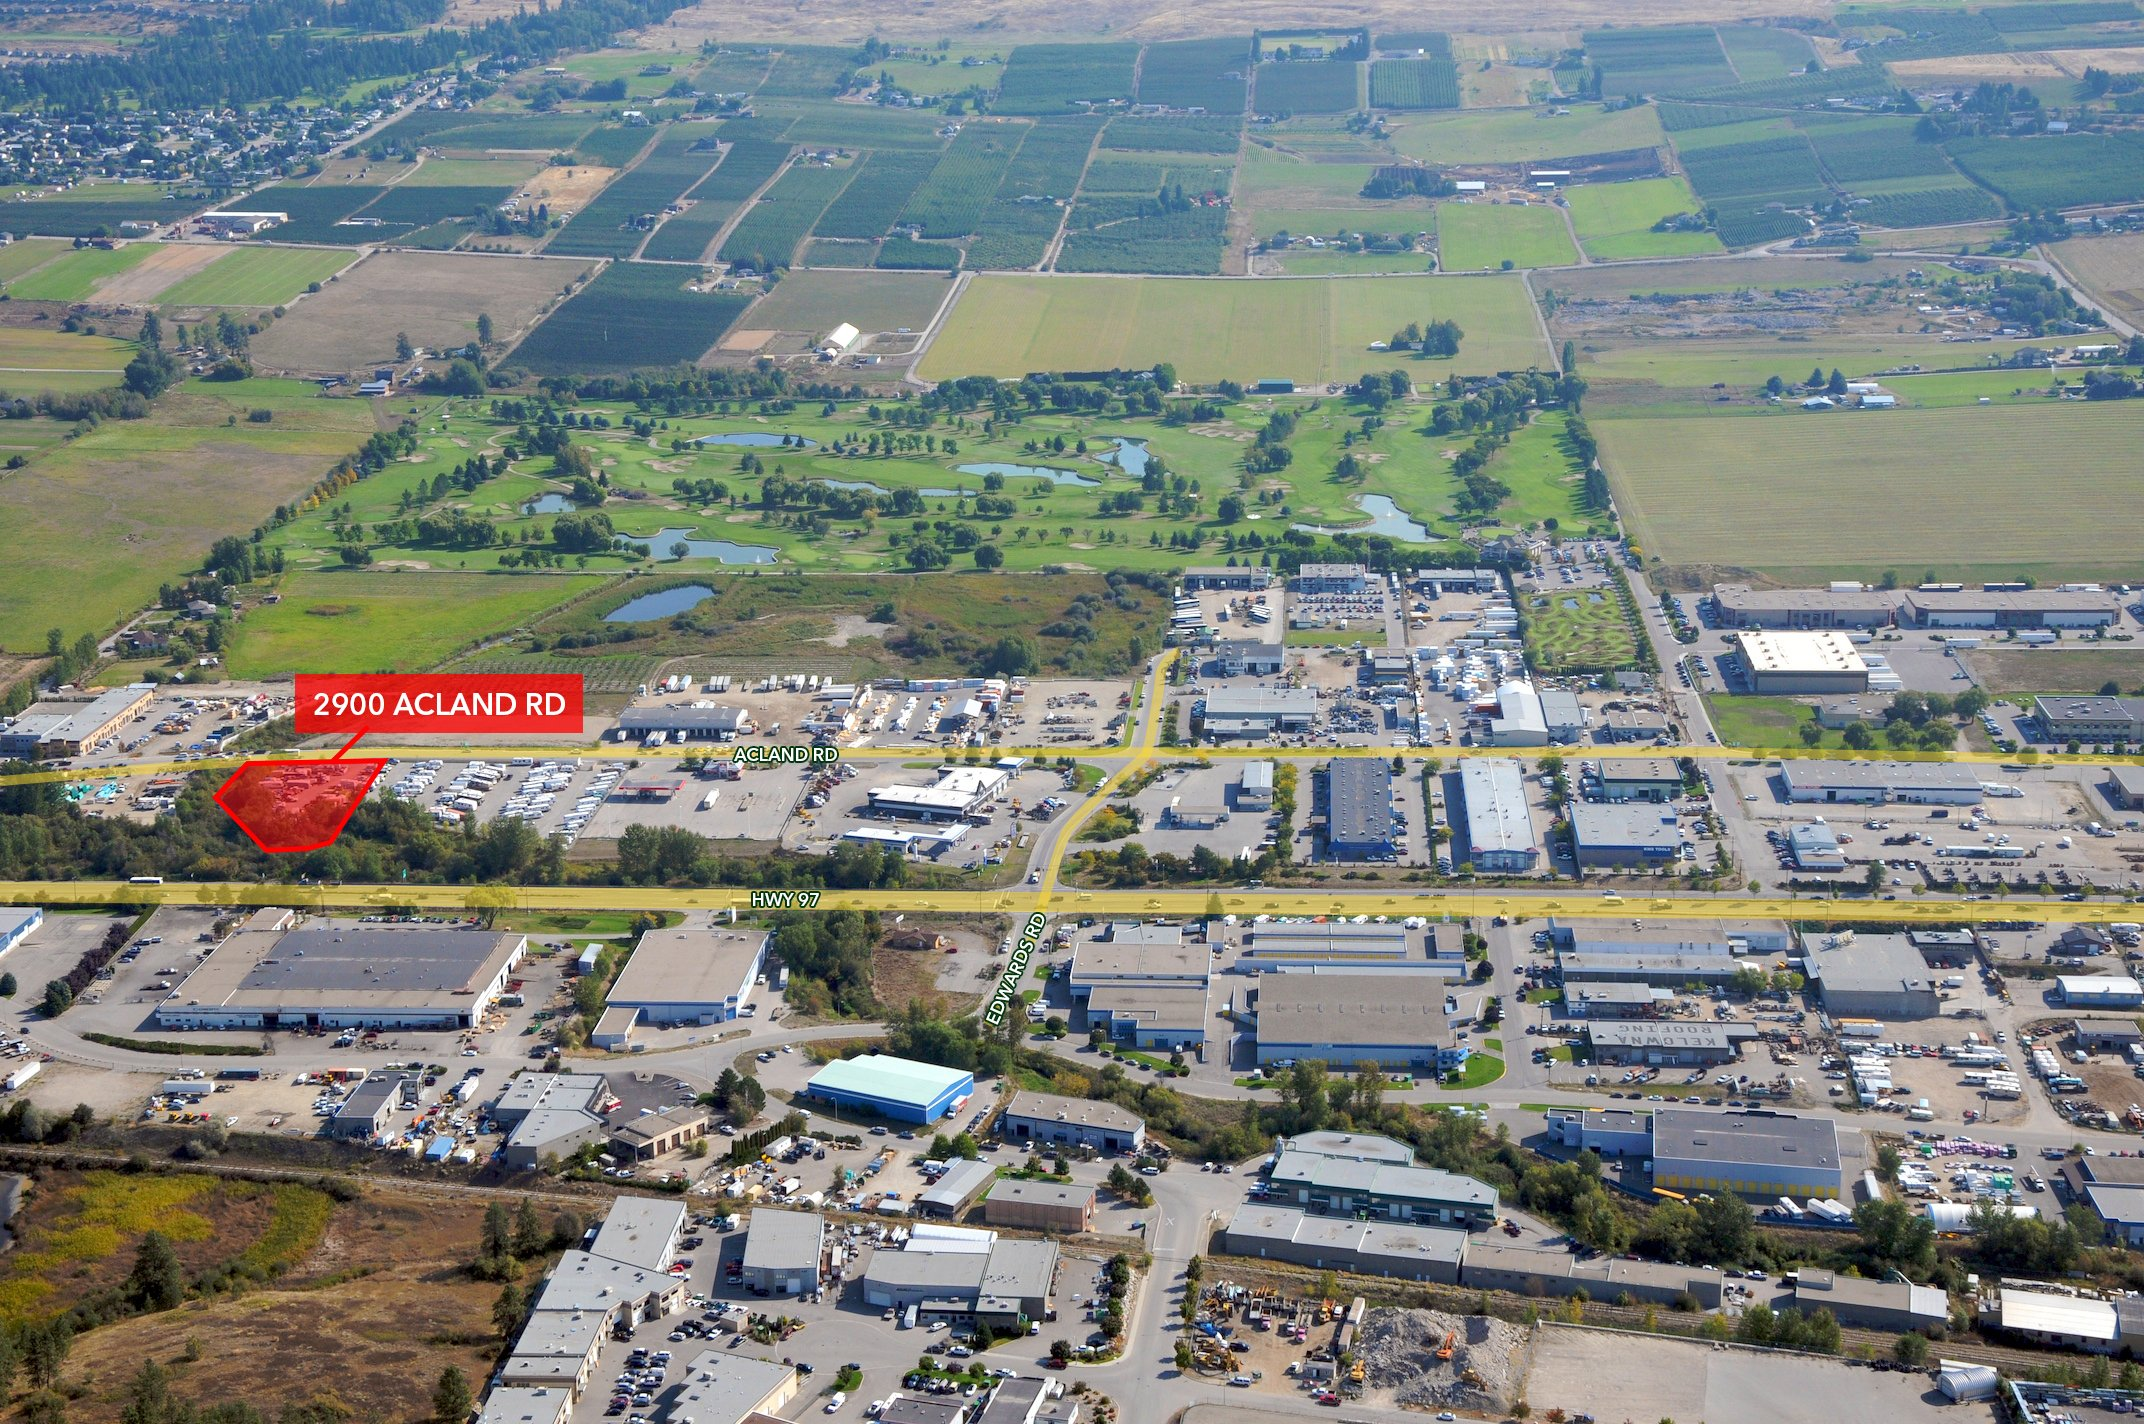 2900 Acland Road, Kelowna, BC - Industrial Site in Reid's Corner w/ Holding Income